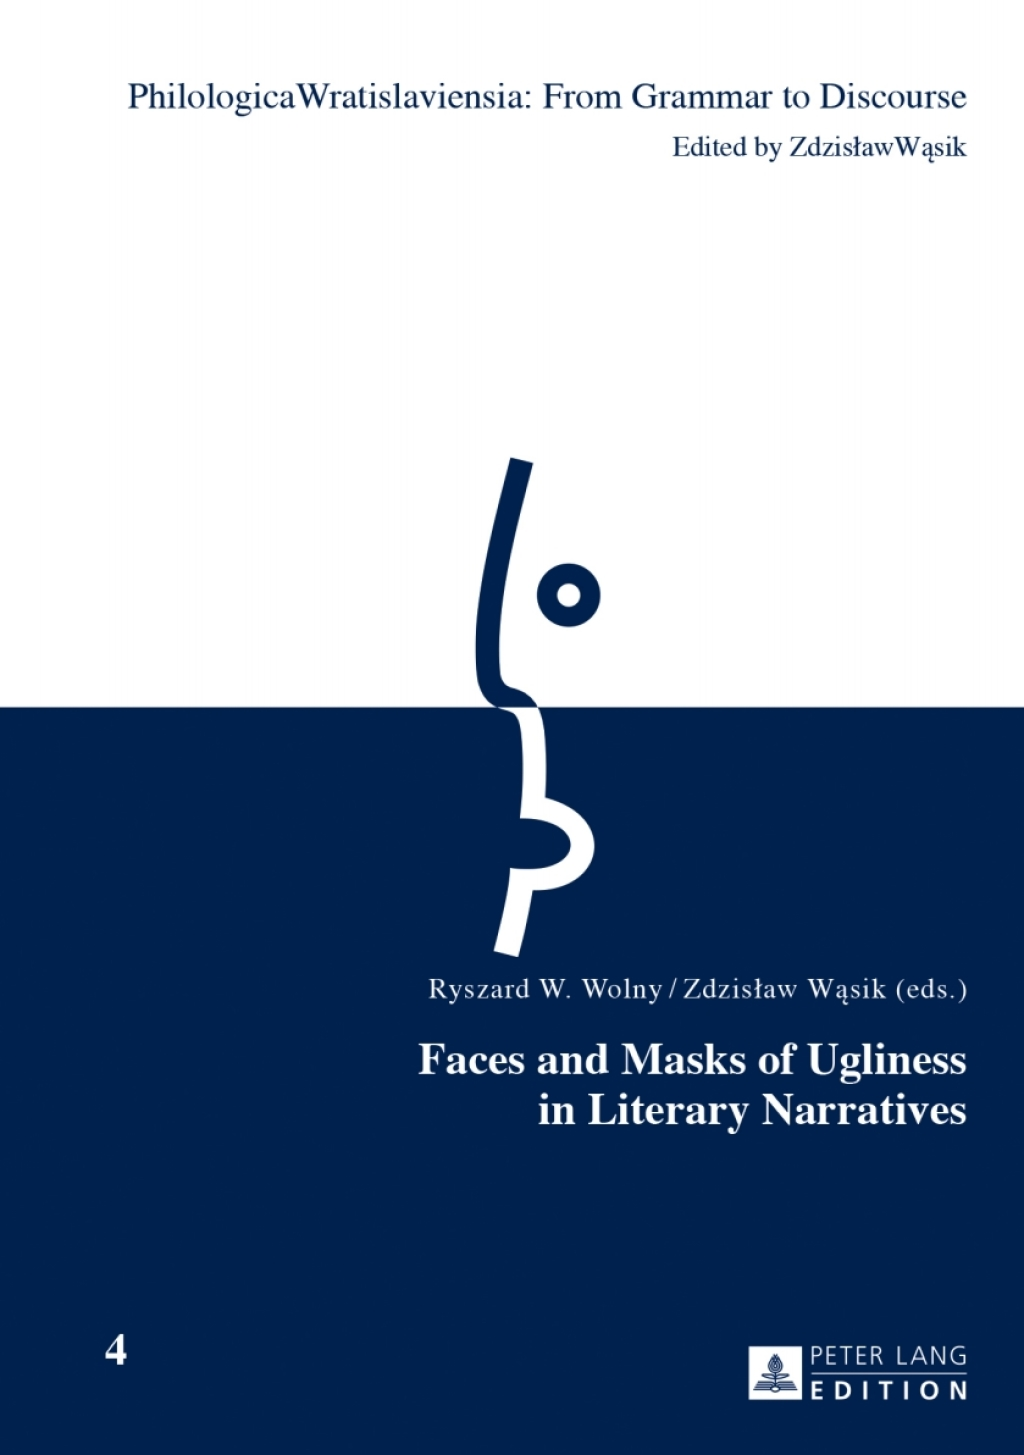 PDF Faces and Masks of Ugliness in Literary Narratives